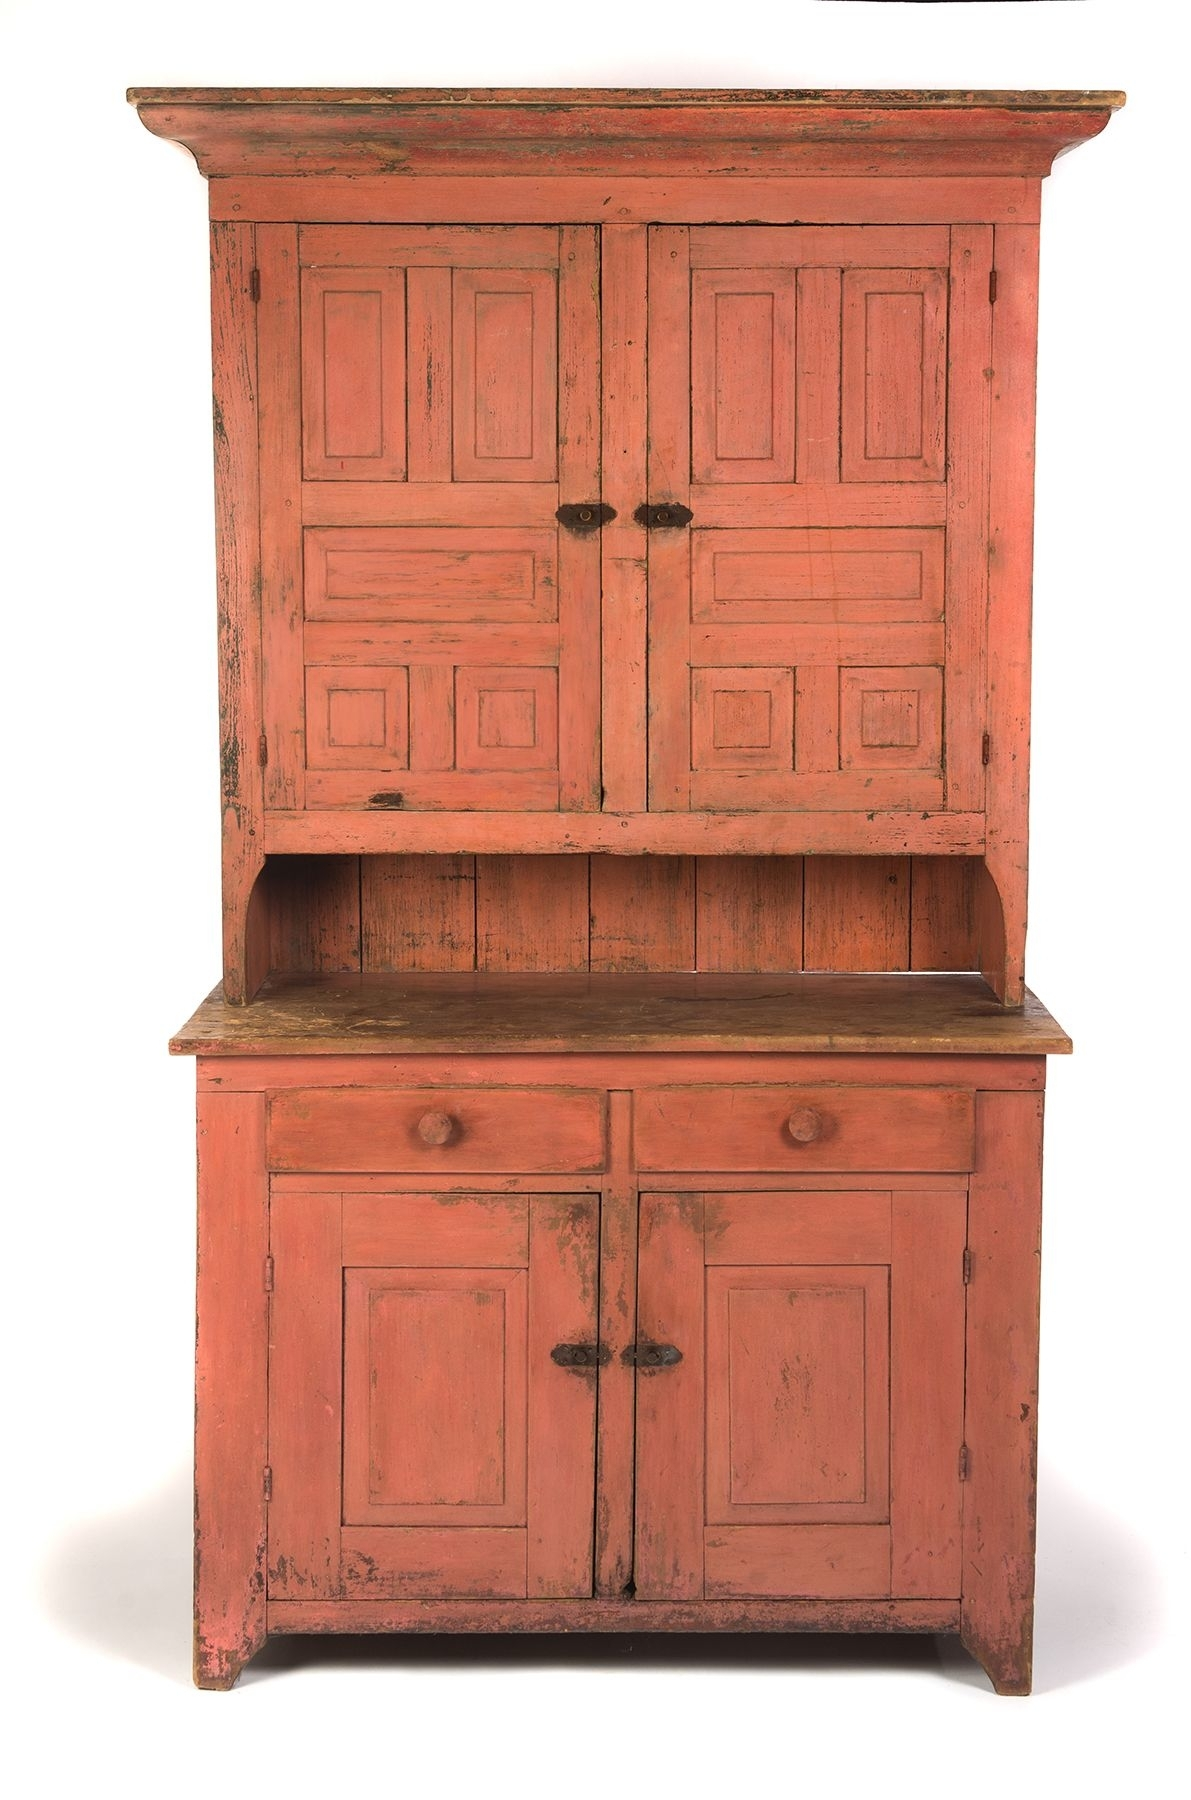 American Painted Stepback Cupboard. Ca 1840-50, Pine. Two-Piece for Iron Pine Sideboards (Image 1 of 30)